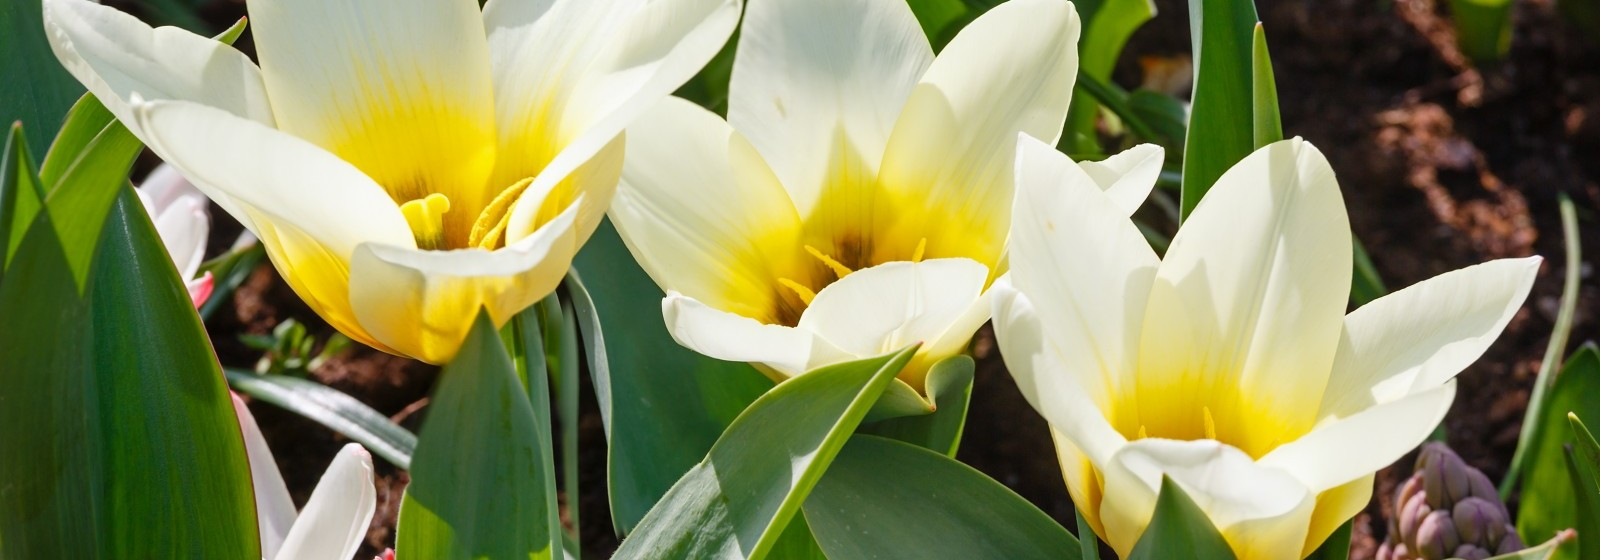 Beautiful three white-yellow tulips close-up (nature spring background).